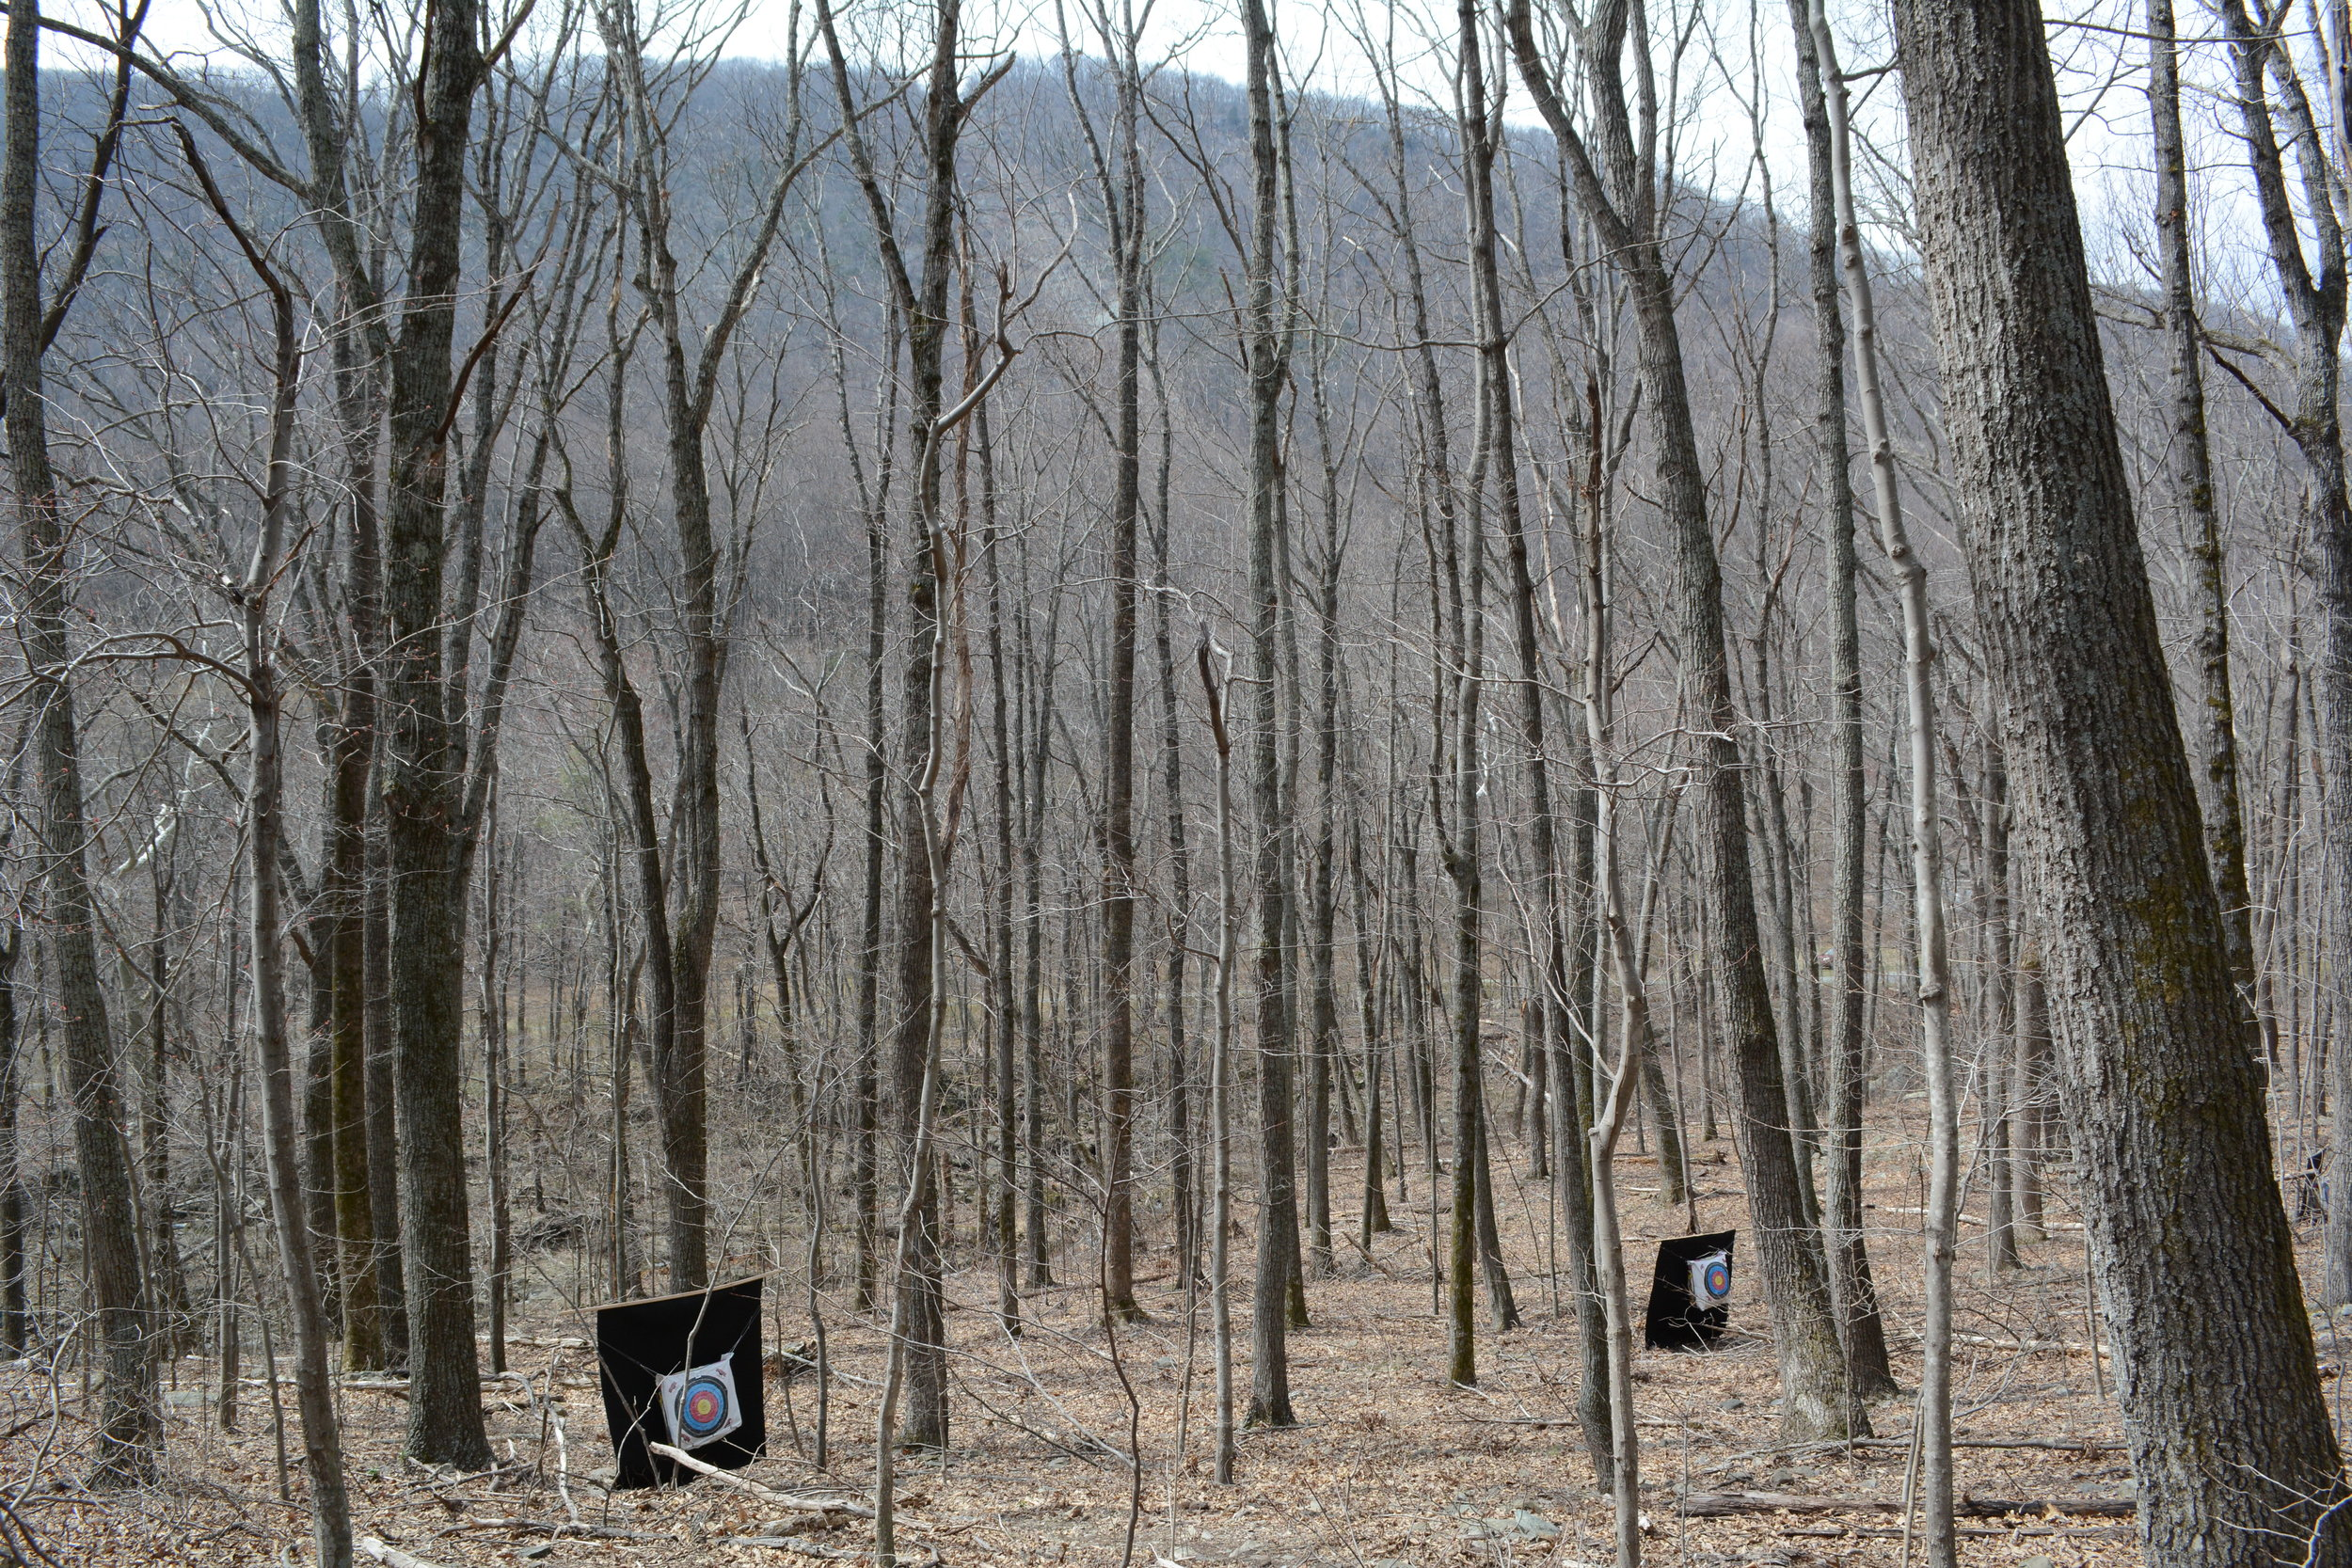 field archery targets-woods-mountains 032517.JPG